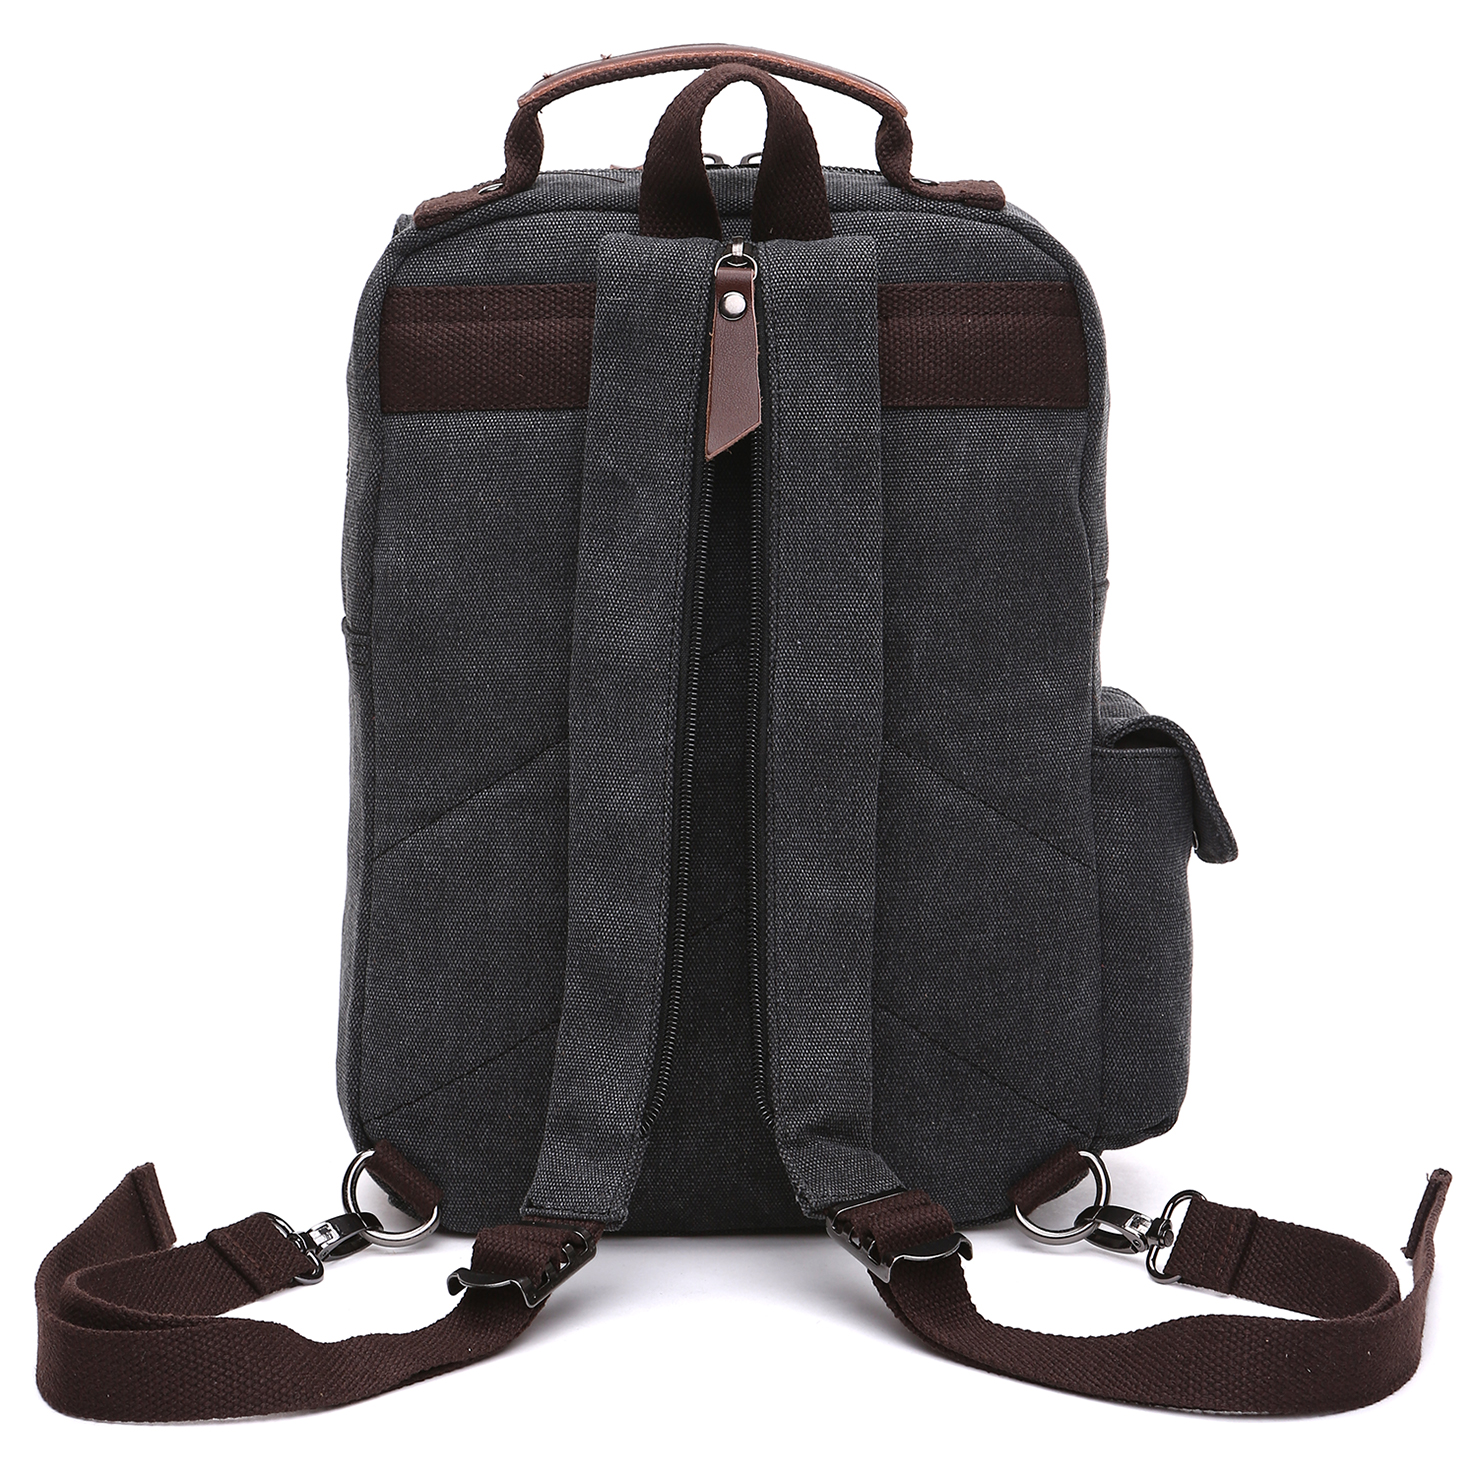 Dasein Vintage Unisex Canvas Backpack- School, Office, Weekend, Travel, Hiking Rucksack-Double strap